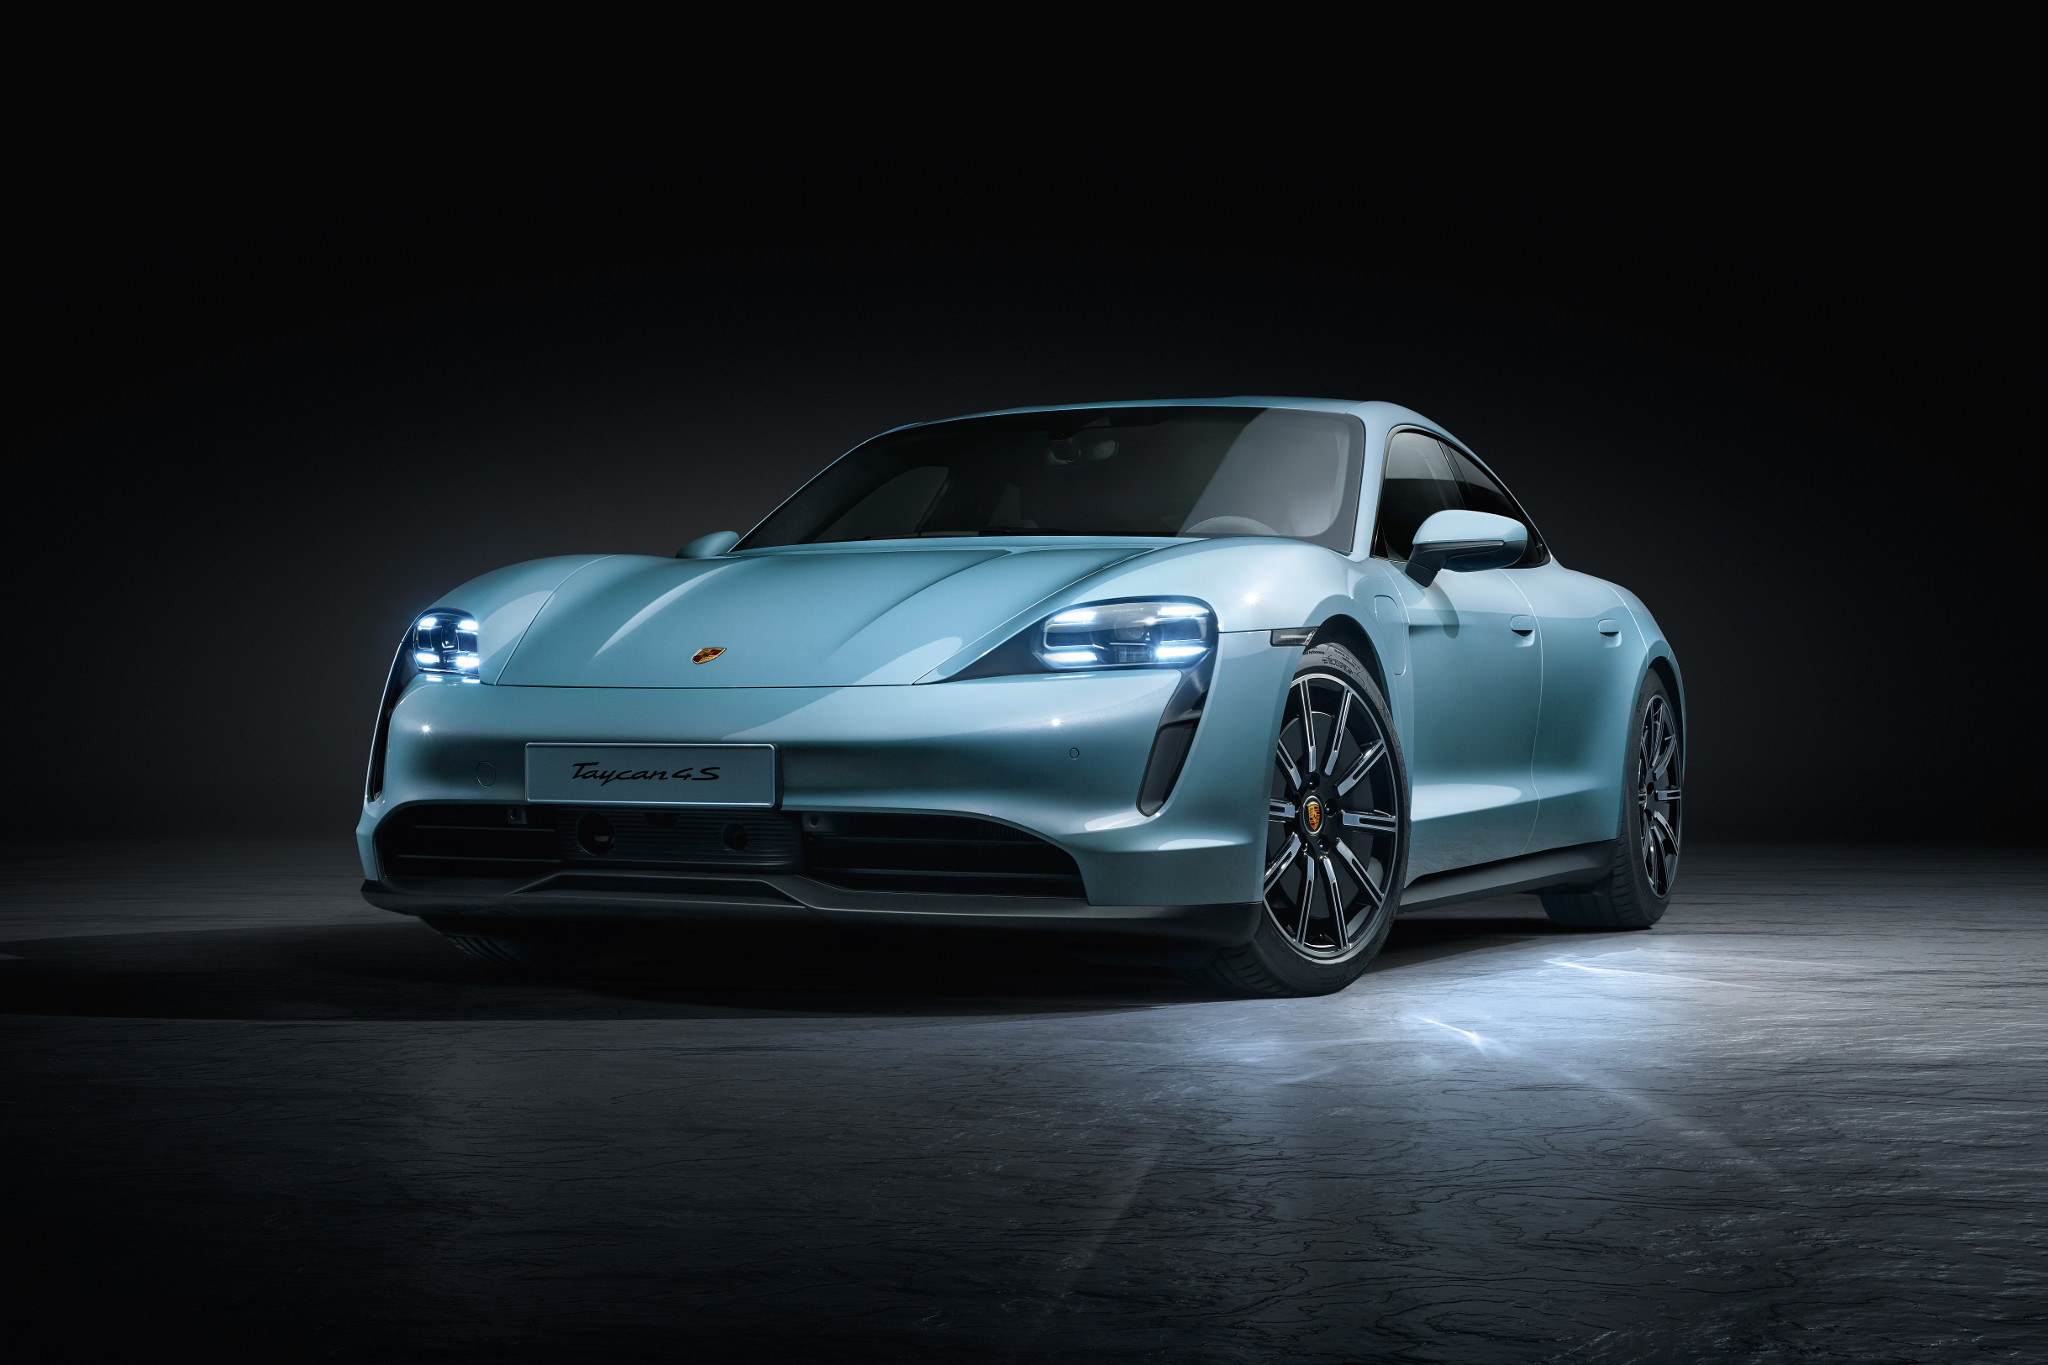 Porsche Just Saved You 47 Grand on the Price of a 2020 Taycan